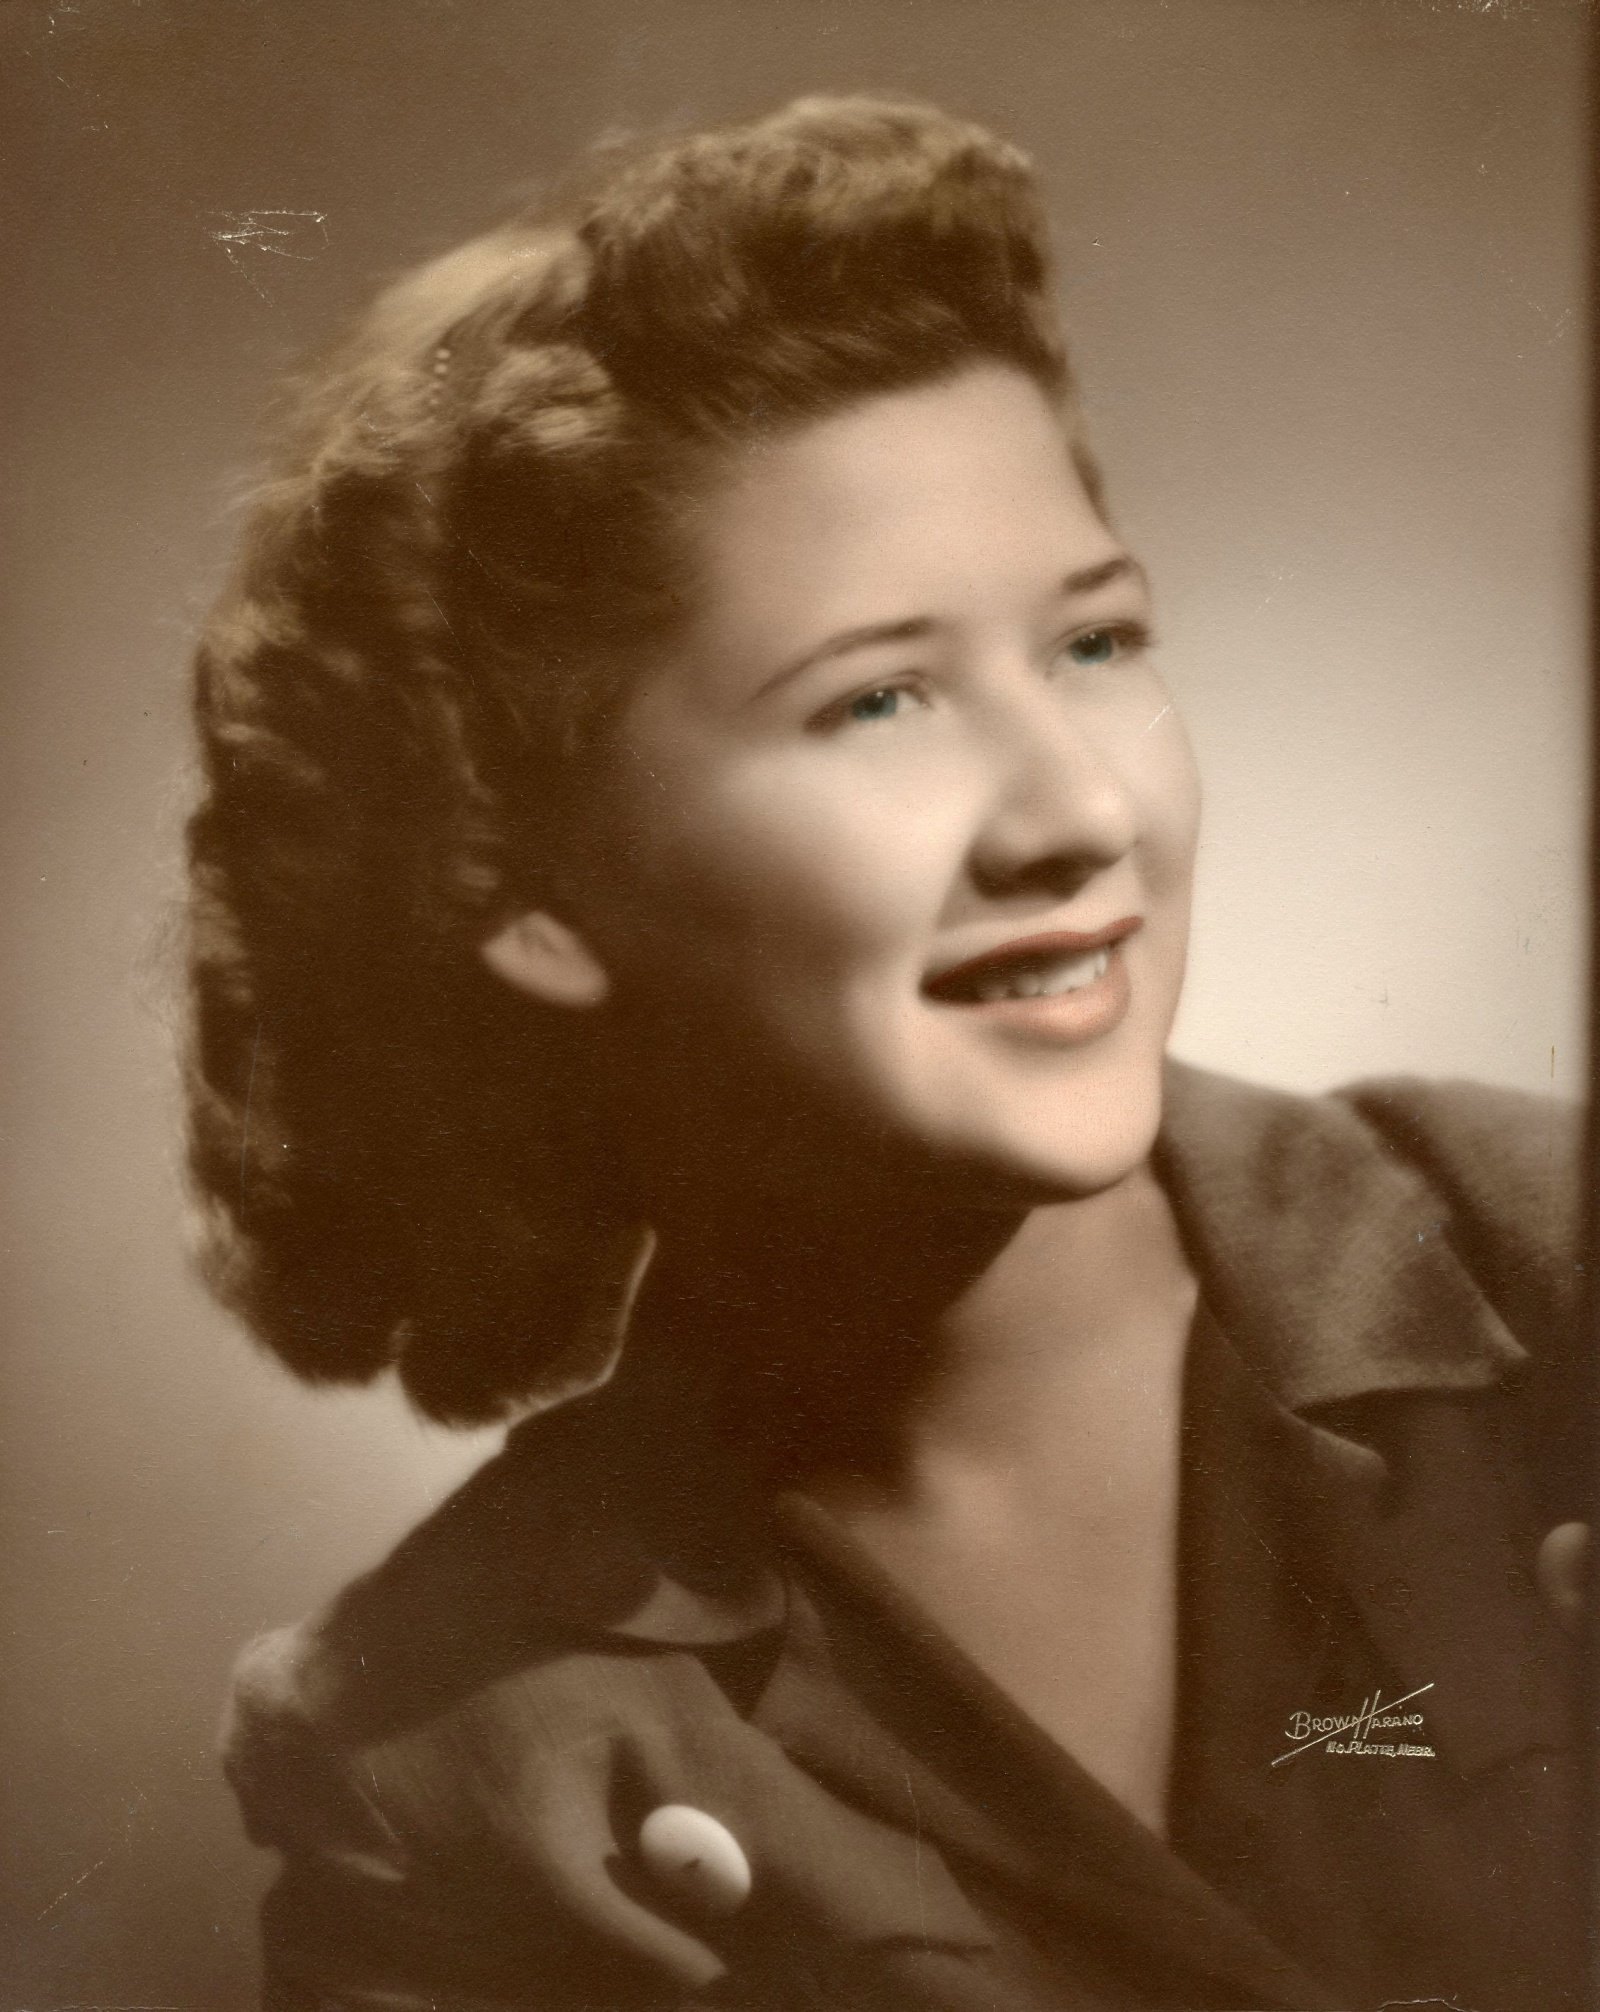 Funeral Services for Lois Coons, age 86